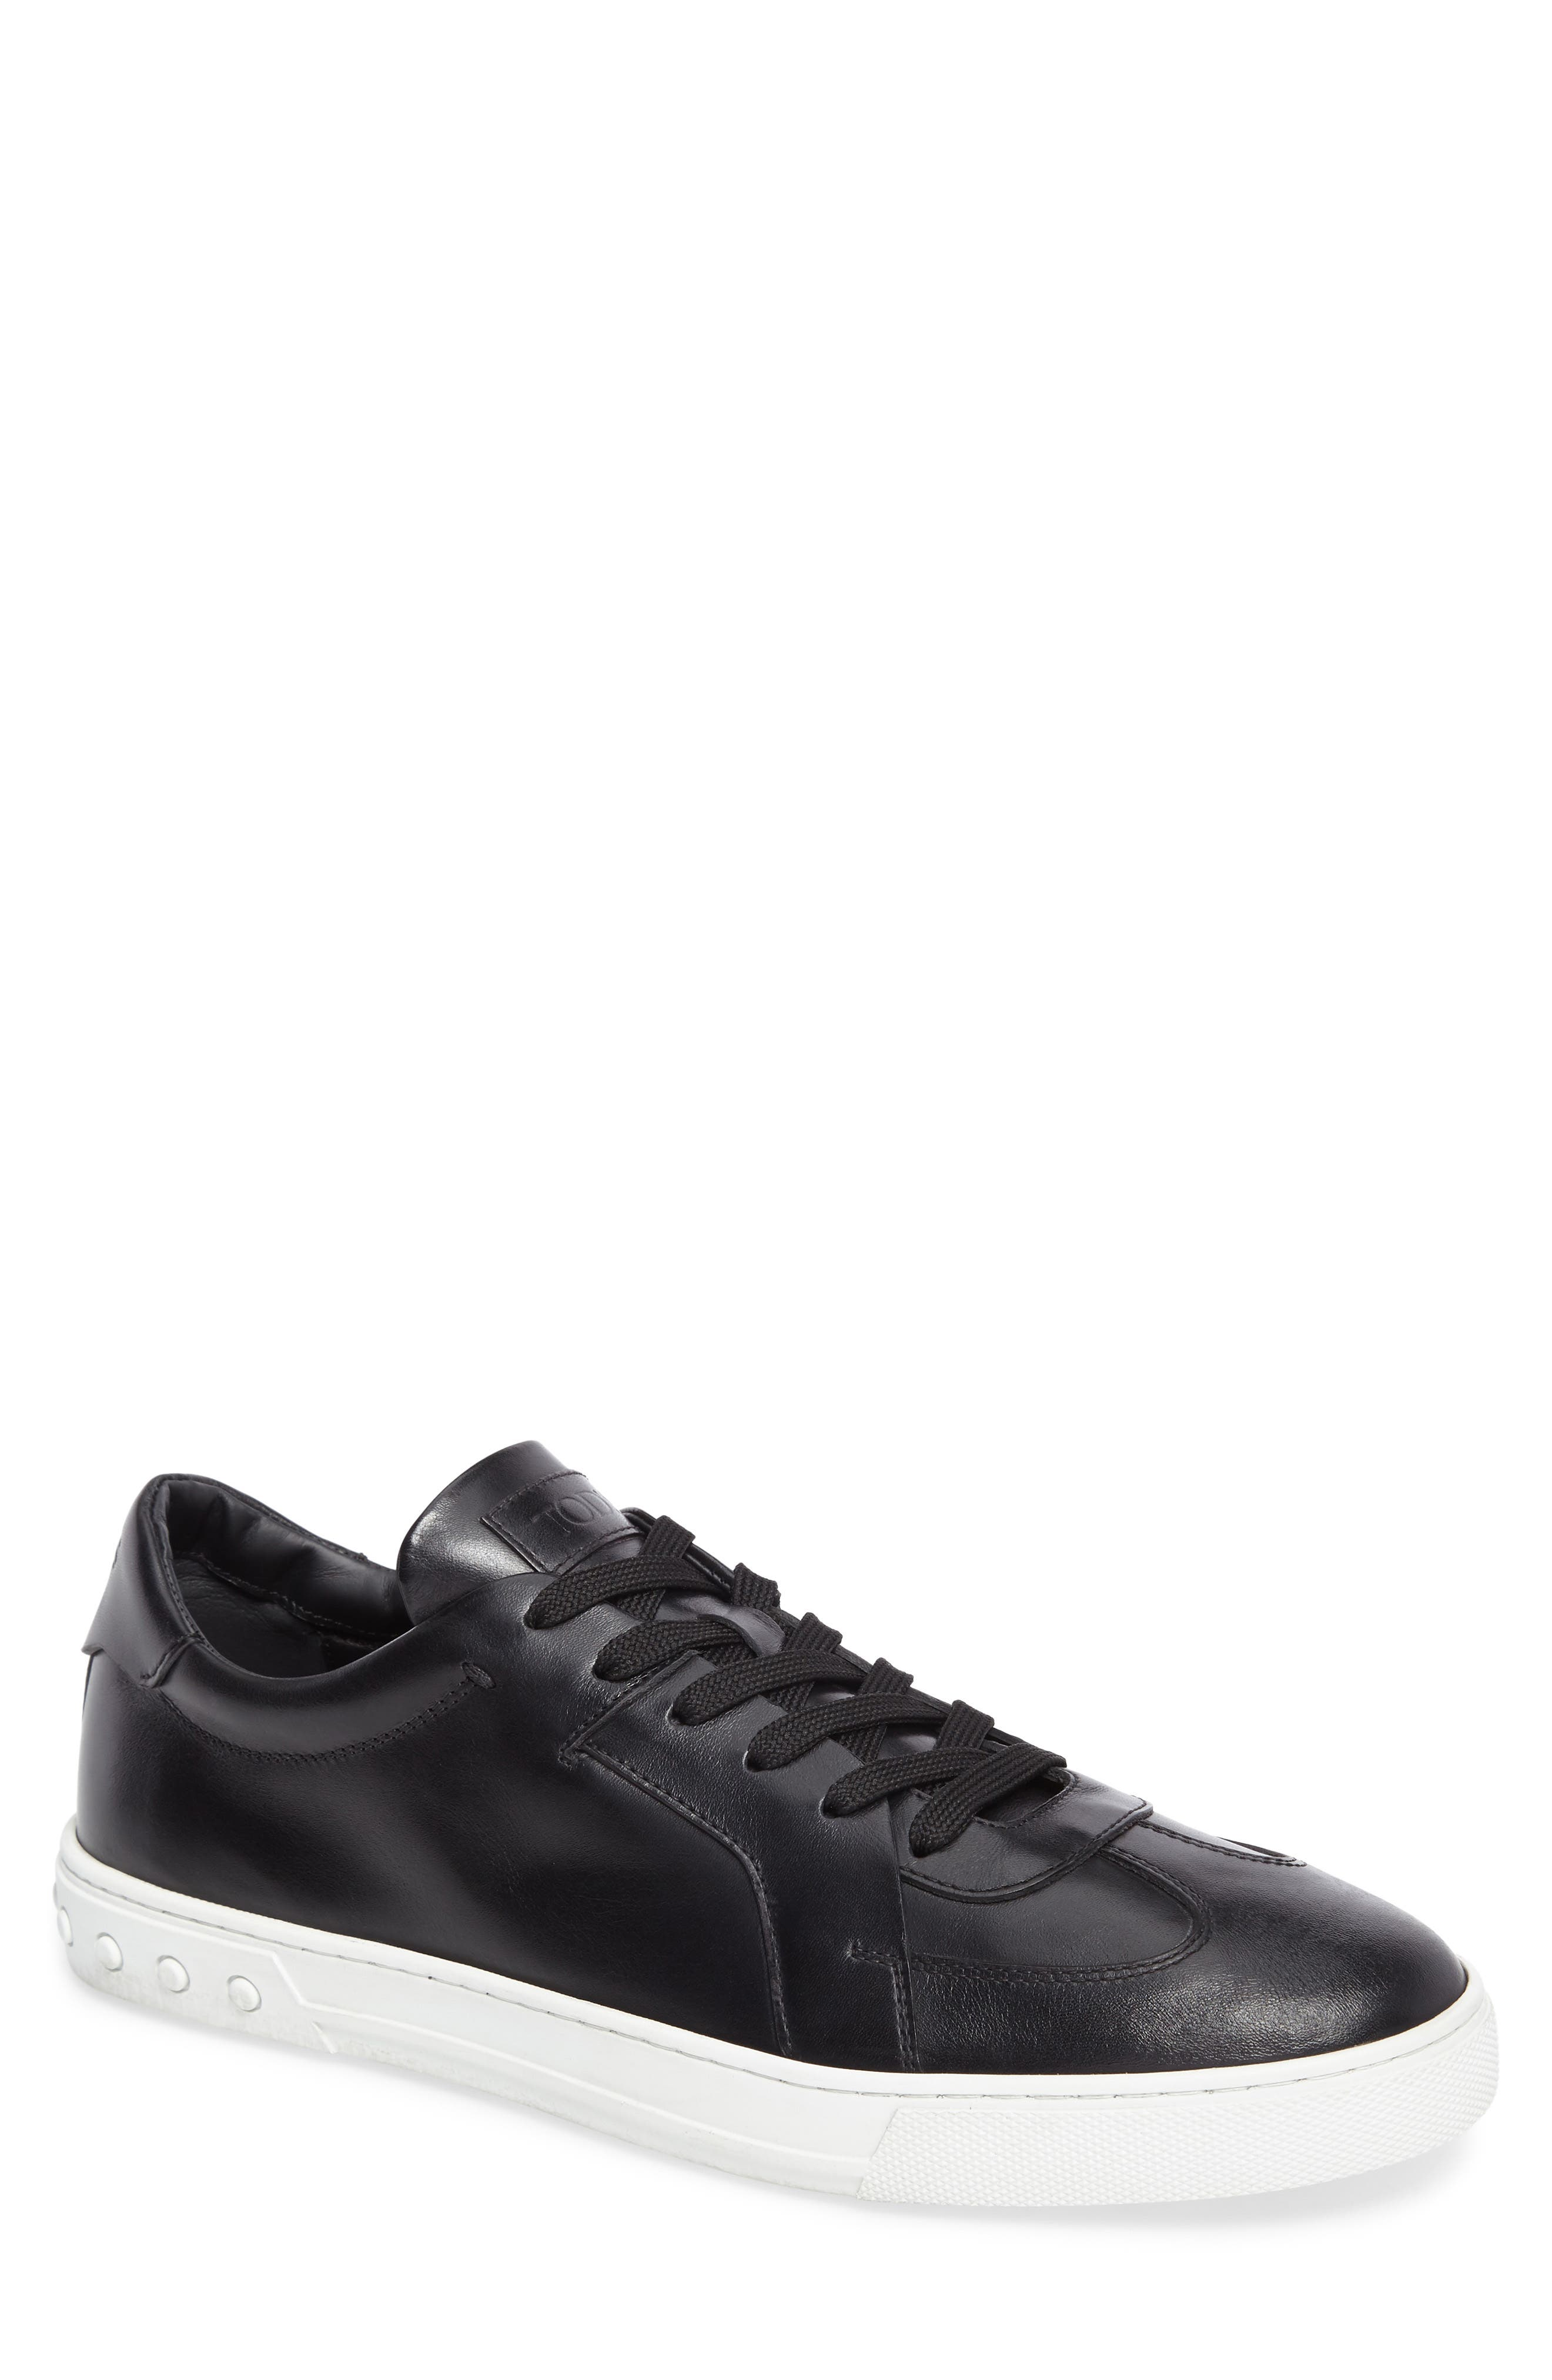 Cassetta Leather Sneaker,                             Main thumbnail 1, color,                             001